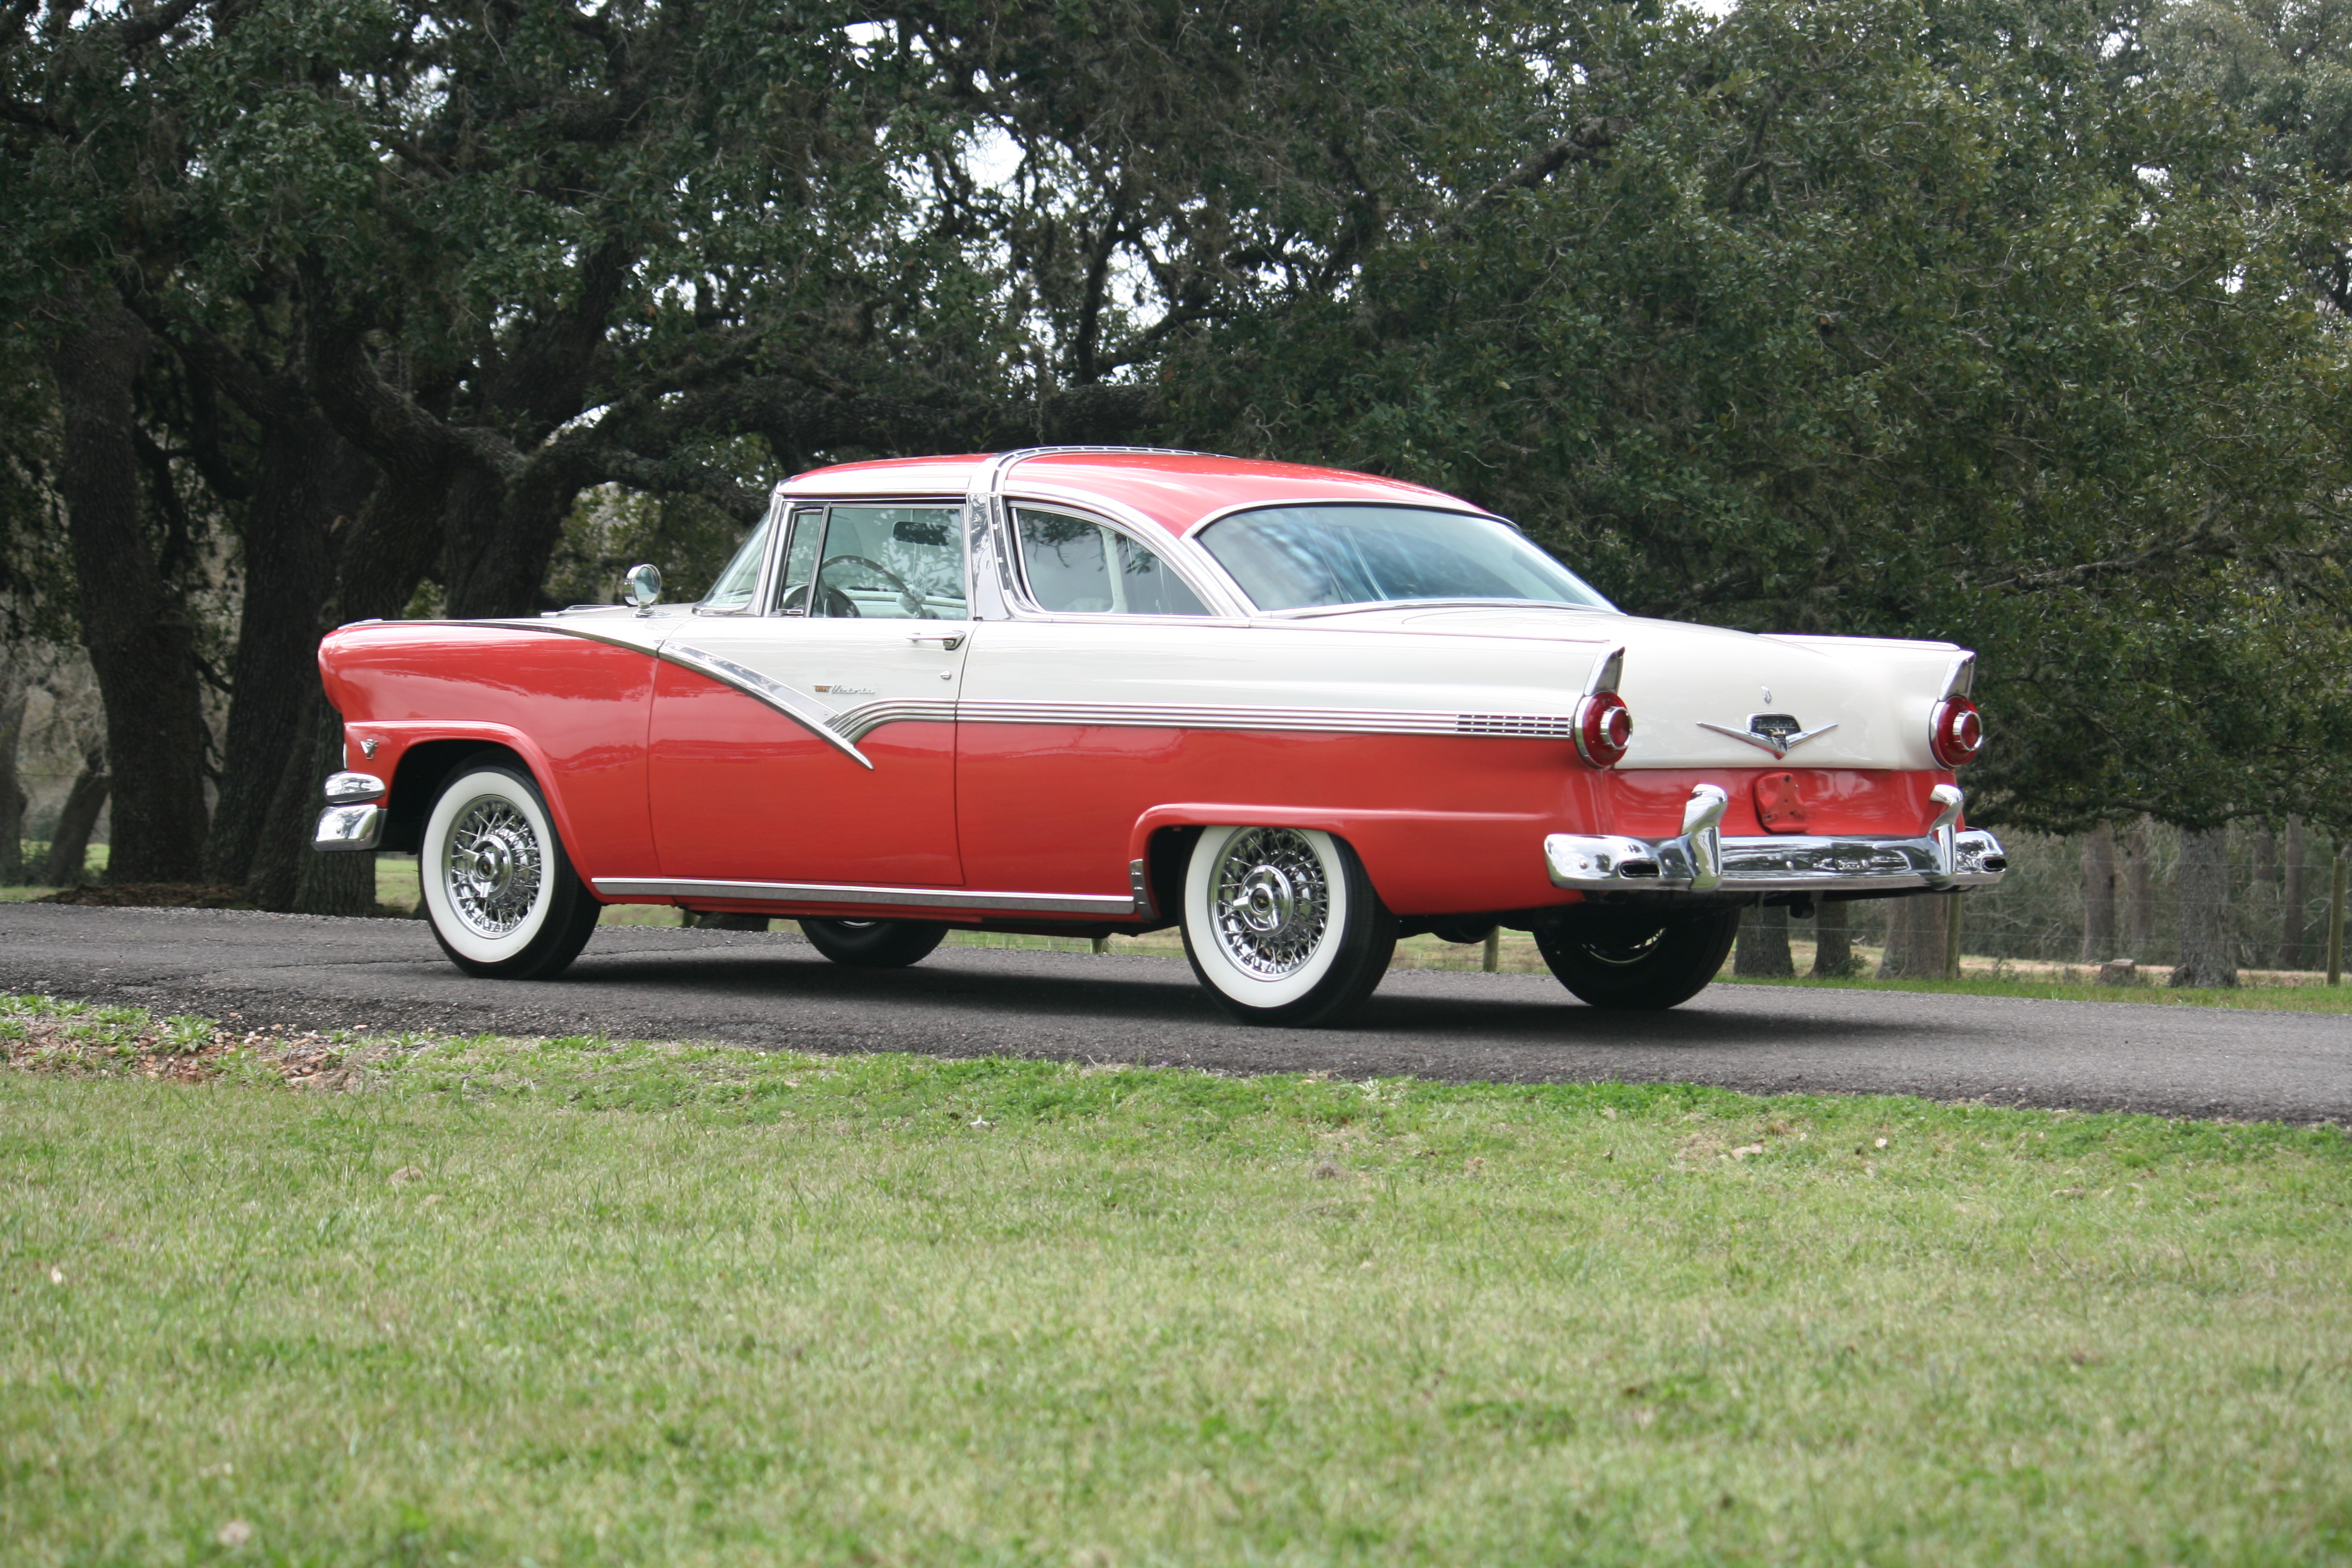 Charlie Thomas Collection - 1956 Ford Fairlane Crown Vic